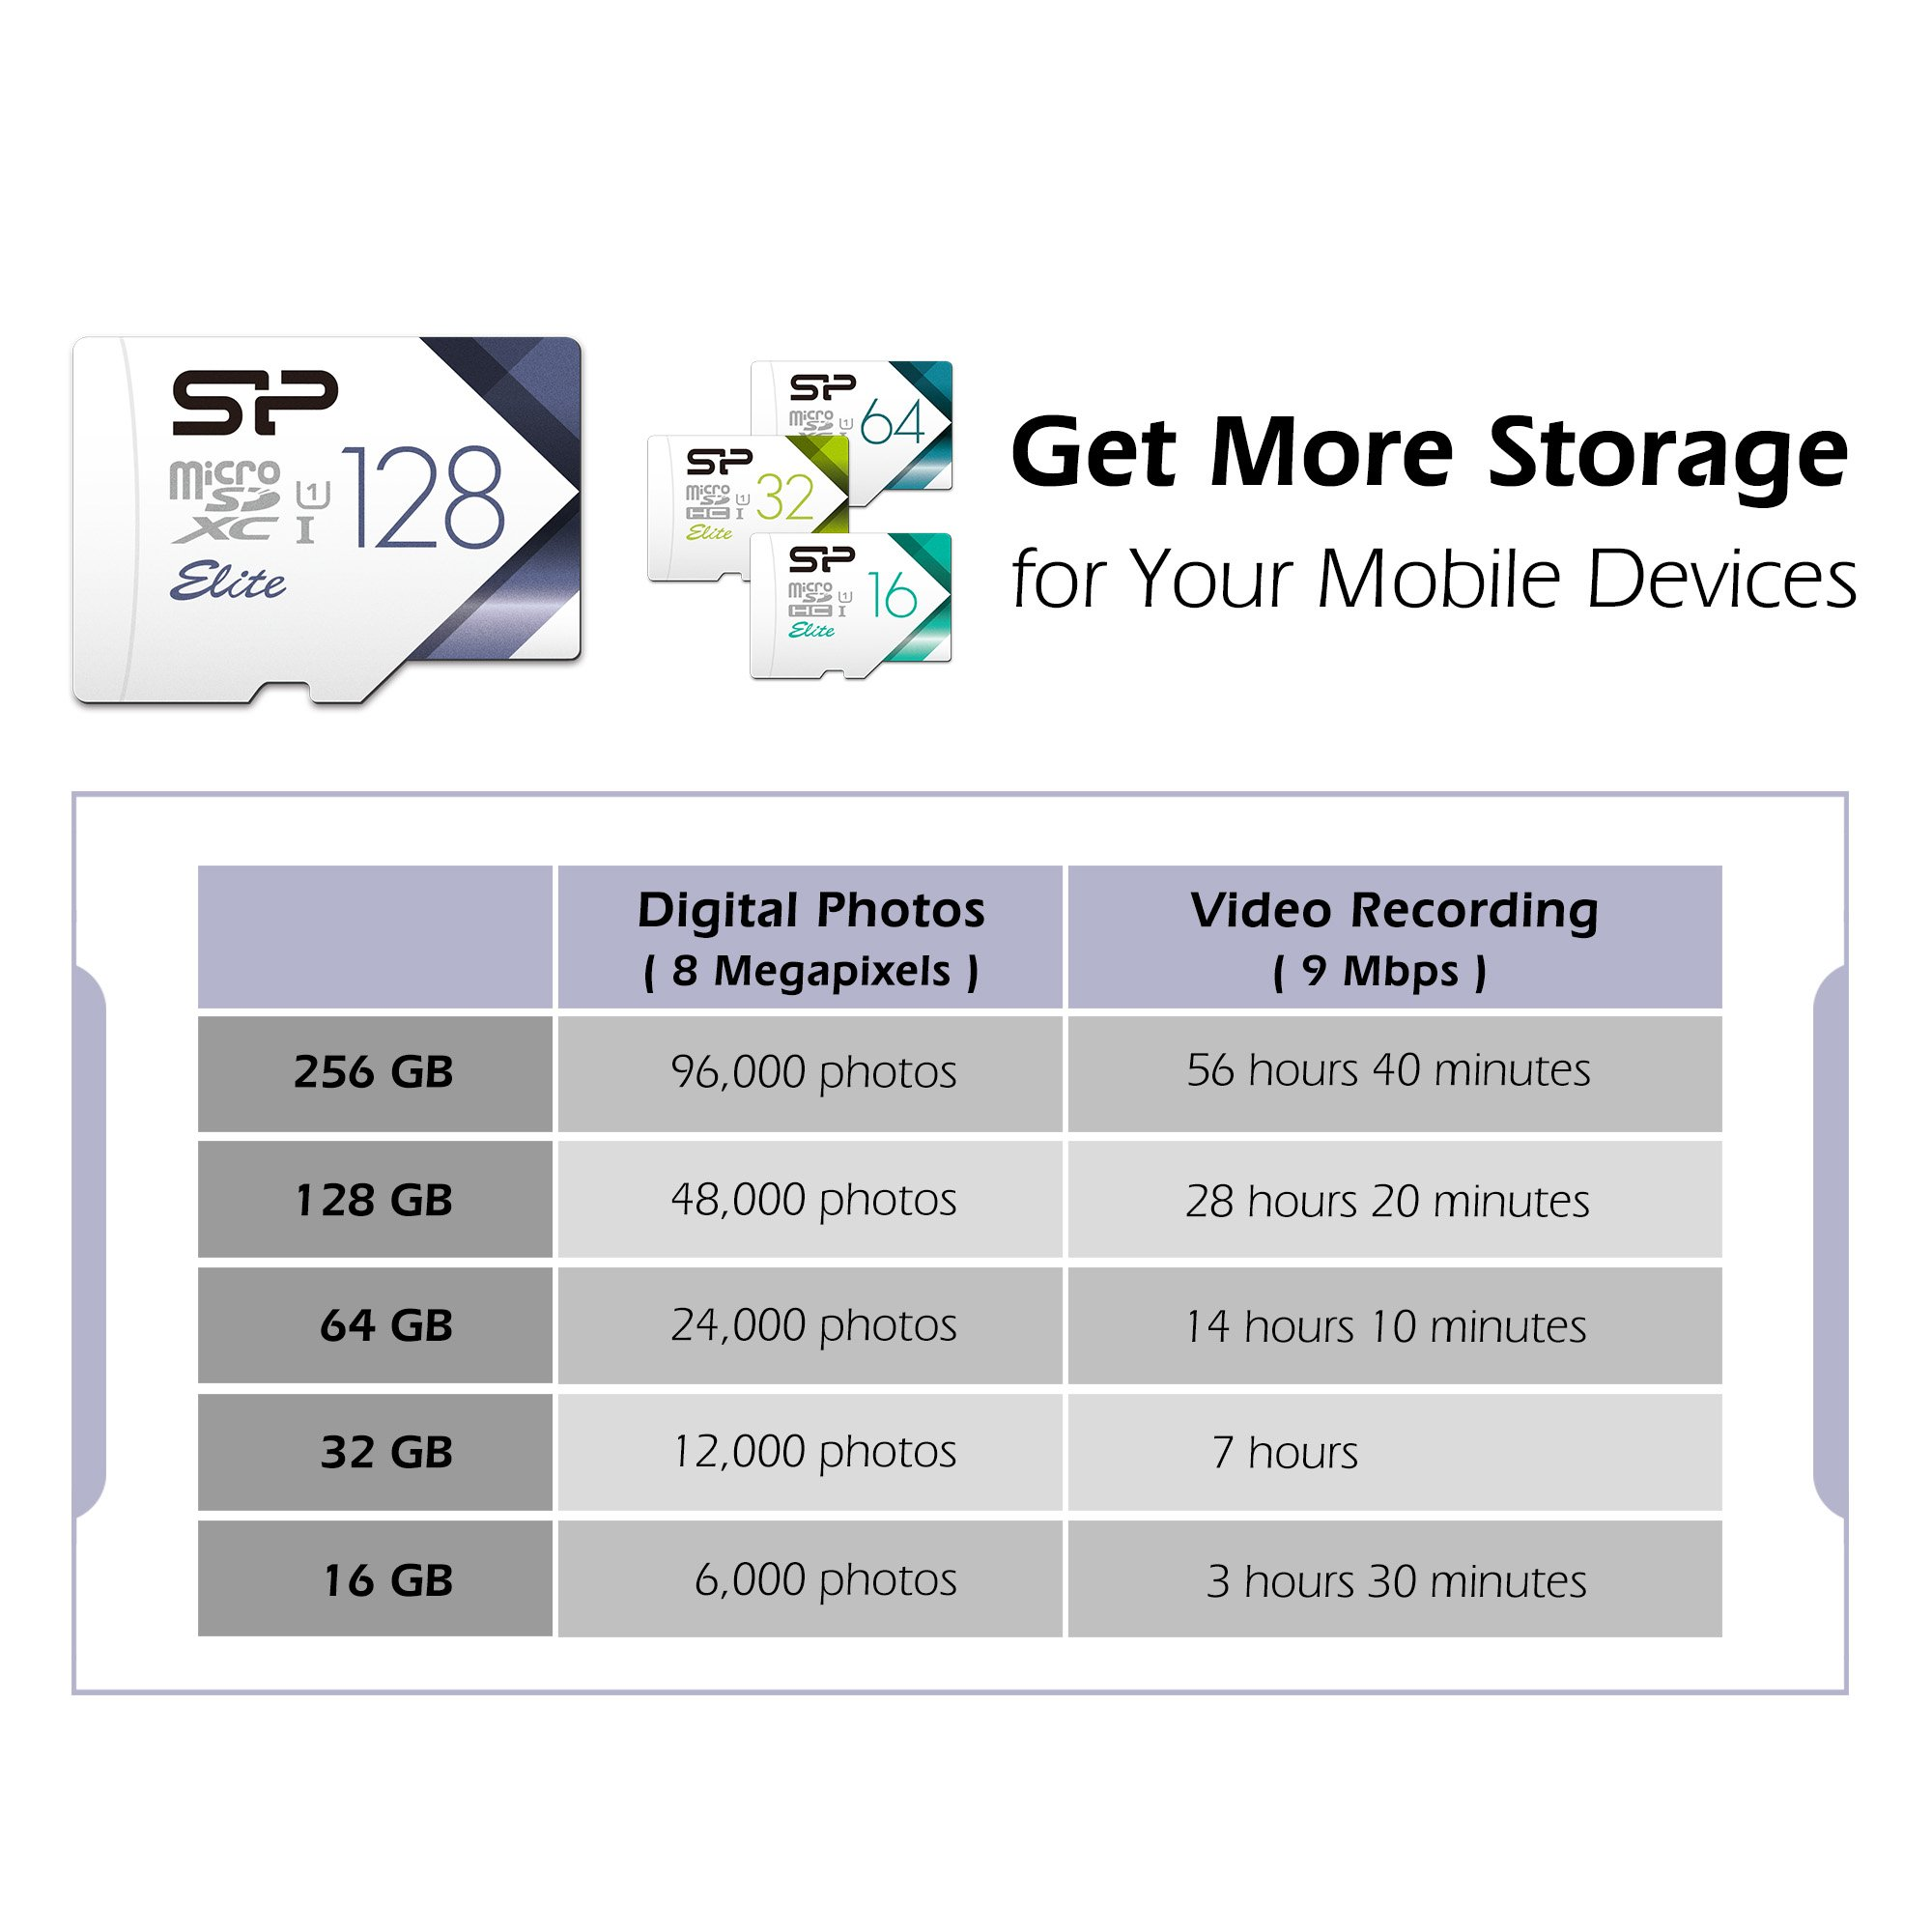 Silicon Power-128GB High Speed MicroSD Card with Adapter by SP Silicon Power (Image #3)